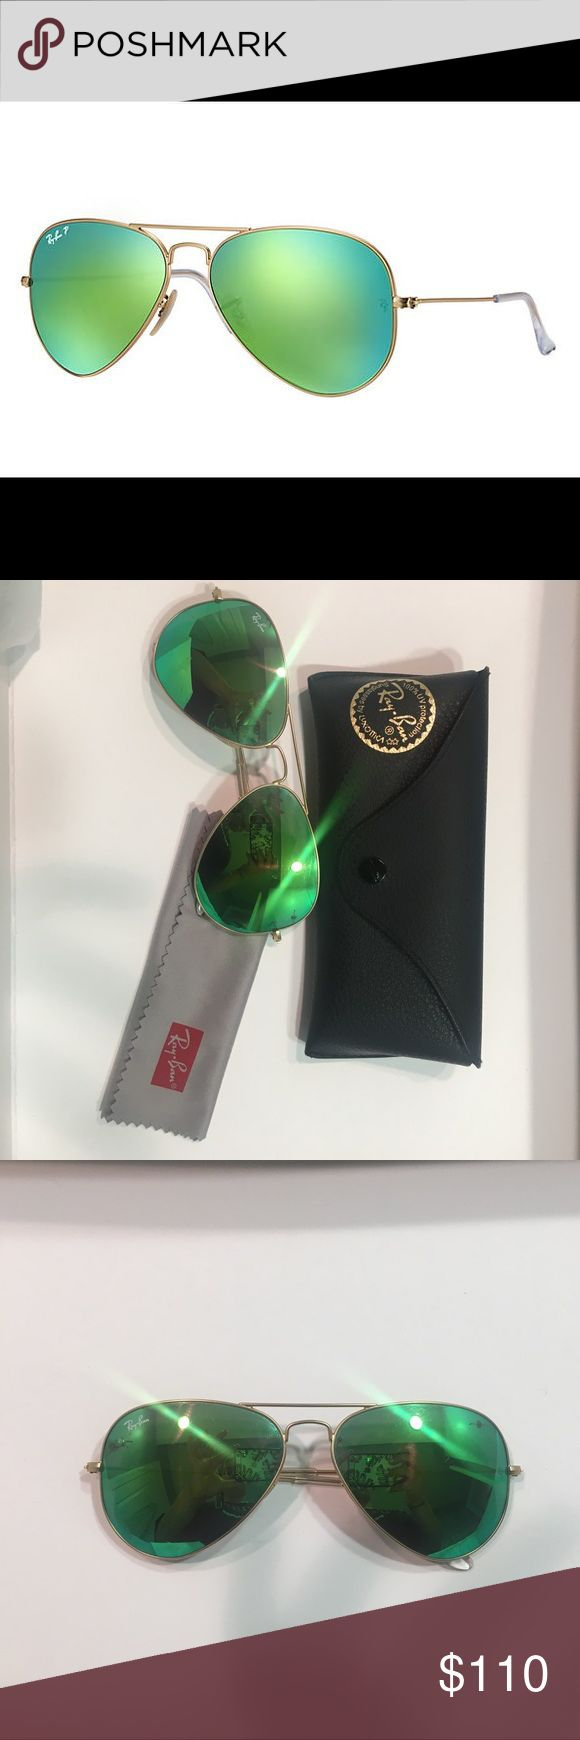 Ray-Ban Aviators Polarized in Green Flash Ray-Ban Aviators polarized with gold frames and green flash lenses. In new condition and worn twice. Comes with microfiber cleaning cloth and leather case. Ray-Ban Accessories Sunglasses